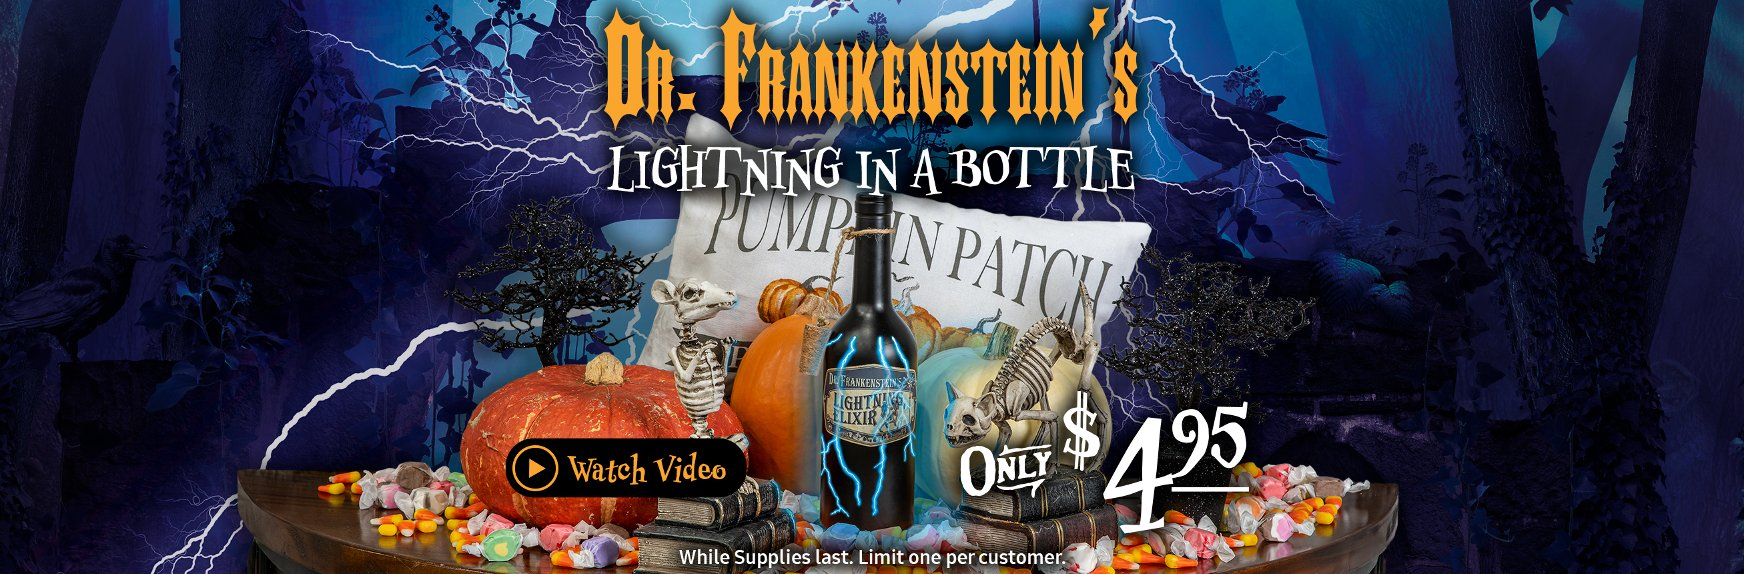 Dr. Frankenstein's Lightning In A Bottle October 2019 | One Day Deal | RC Willey